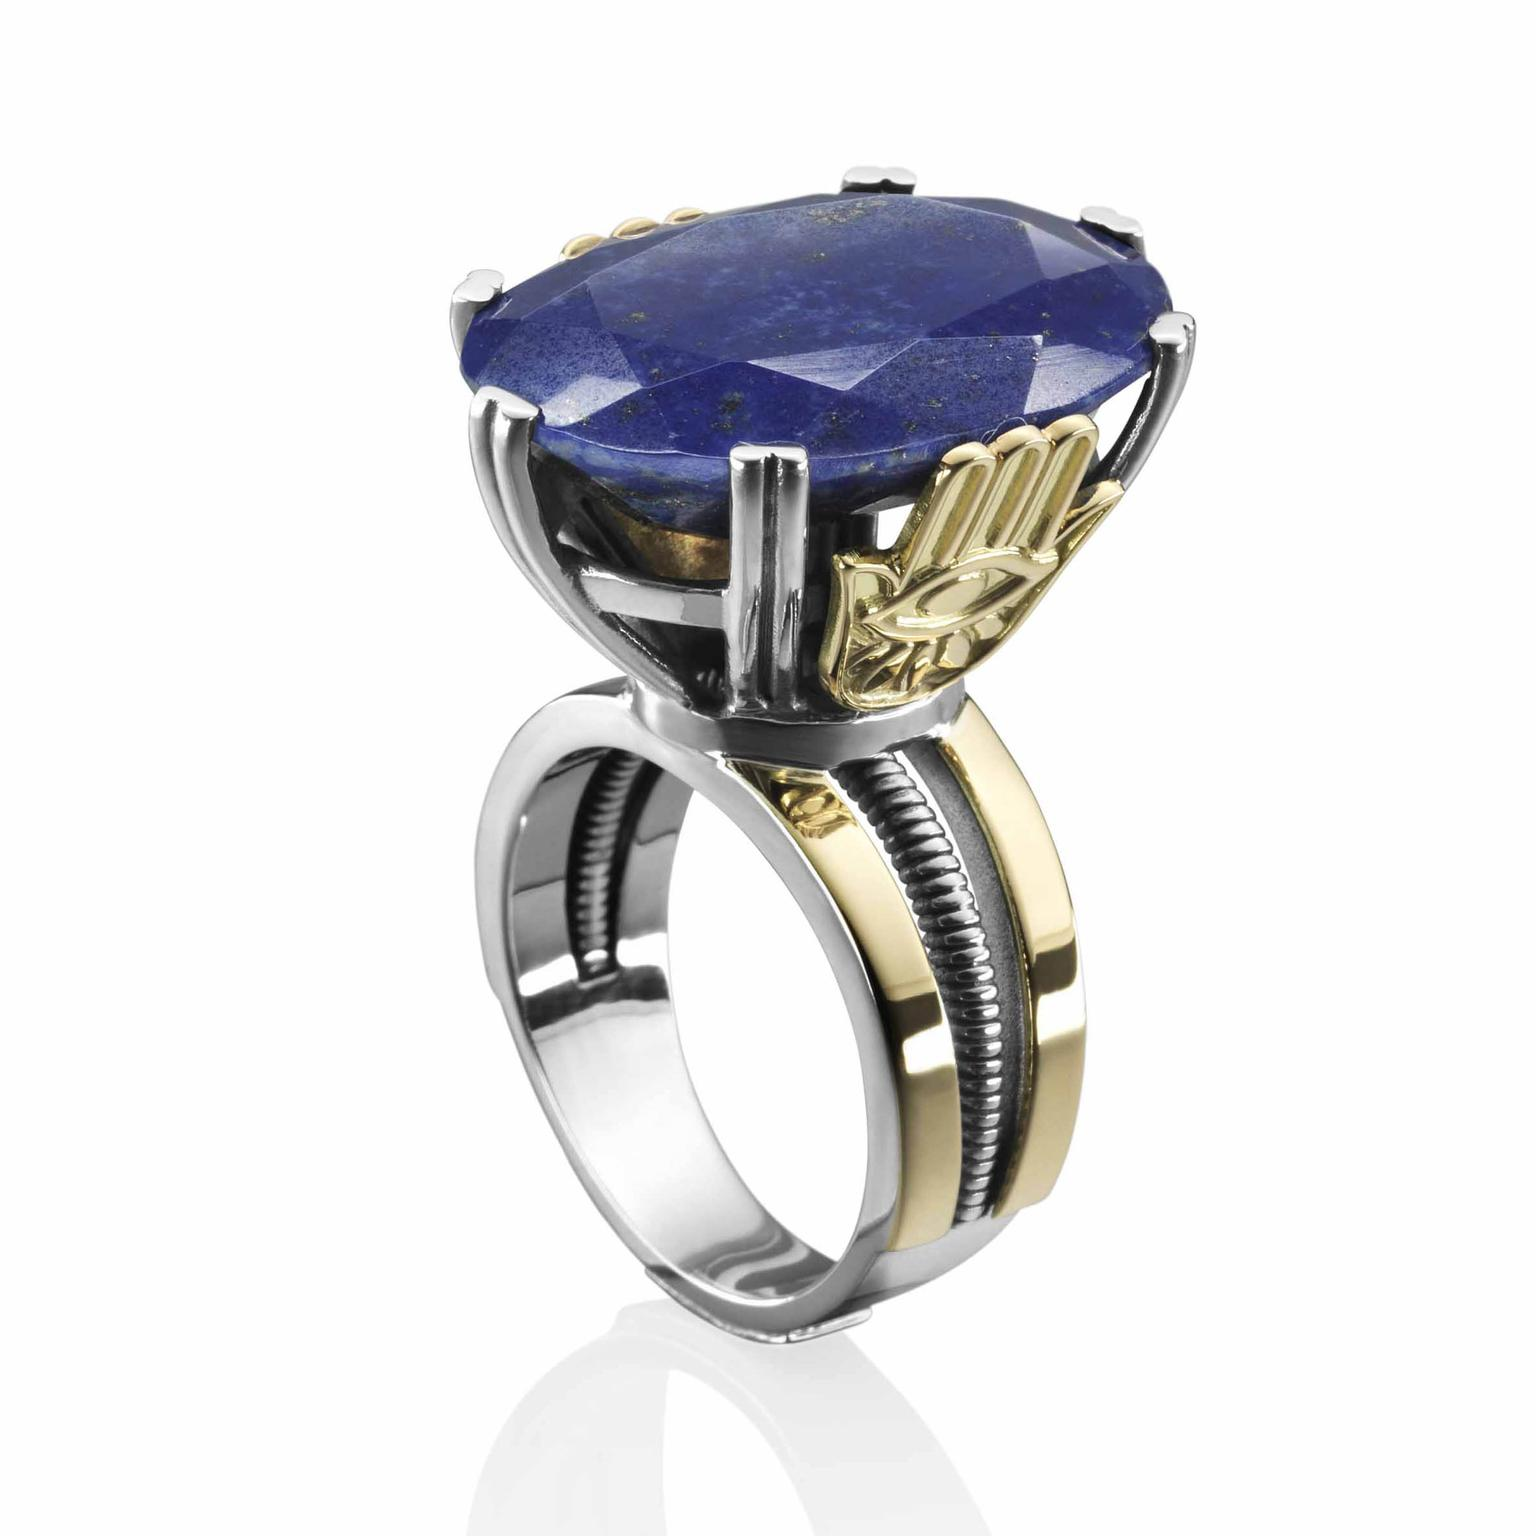 Talisman inspired ring set with Royal Blue lapis lazuli by Azza Fahmy